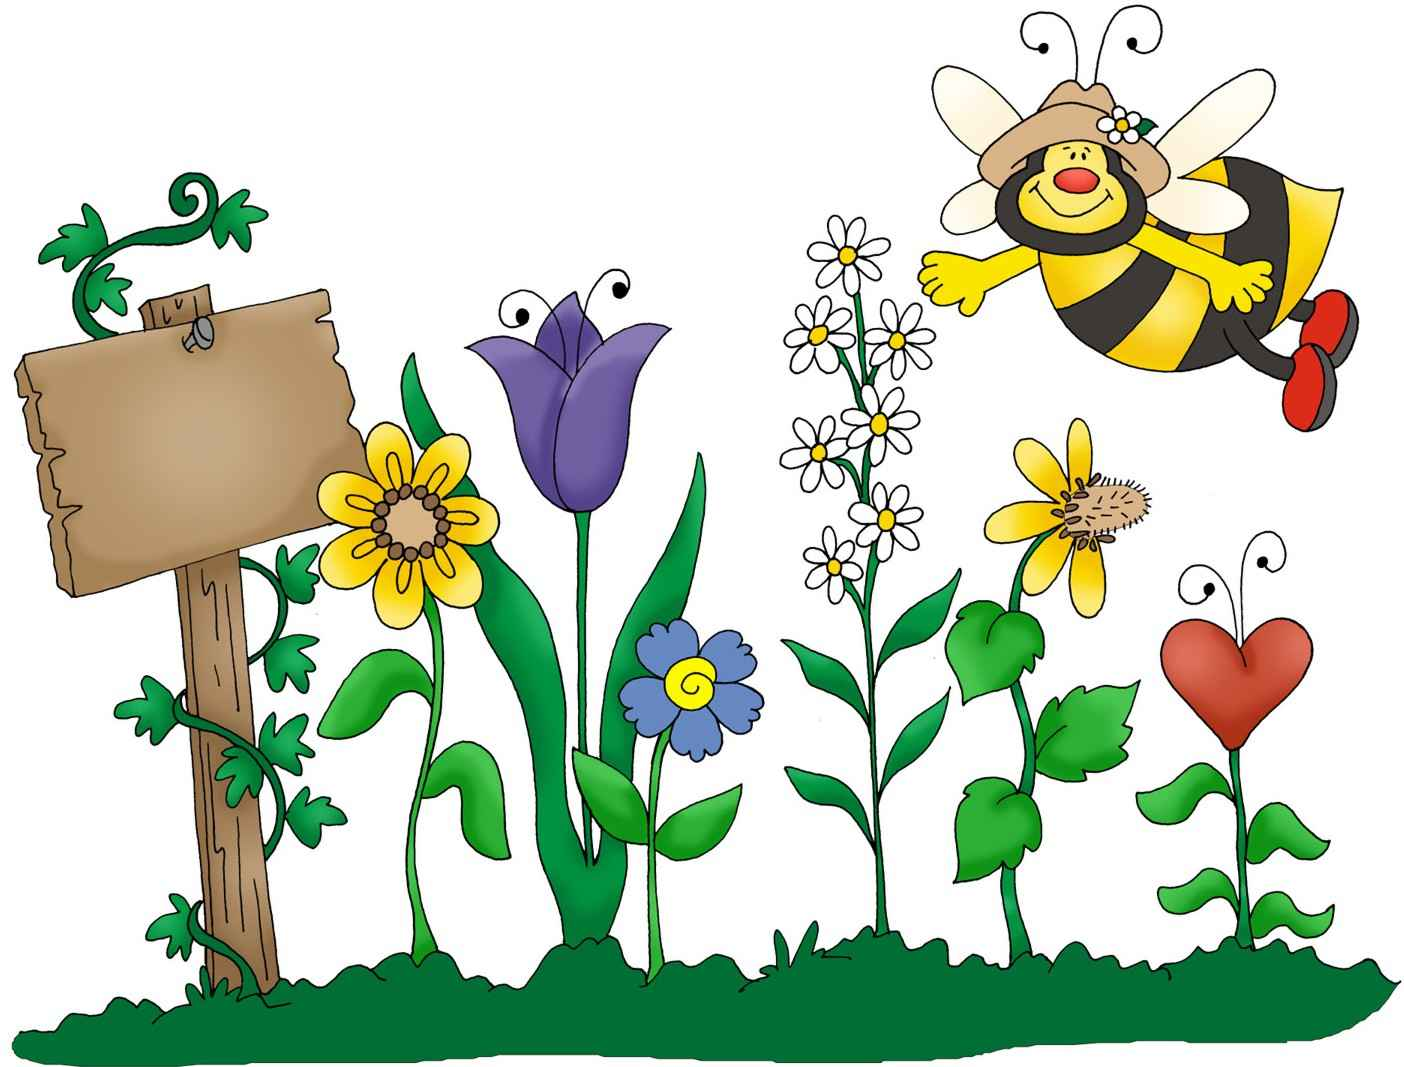 1404x1067 School Garden Clipart Cool Model On Garden Decor Ideas 0, Spring